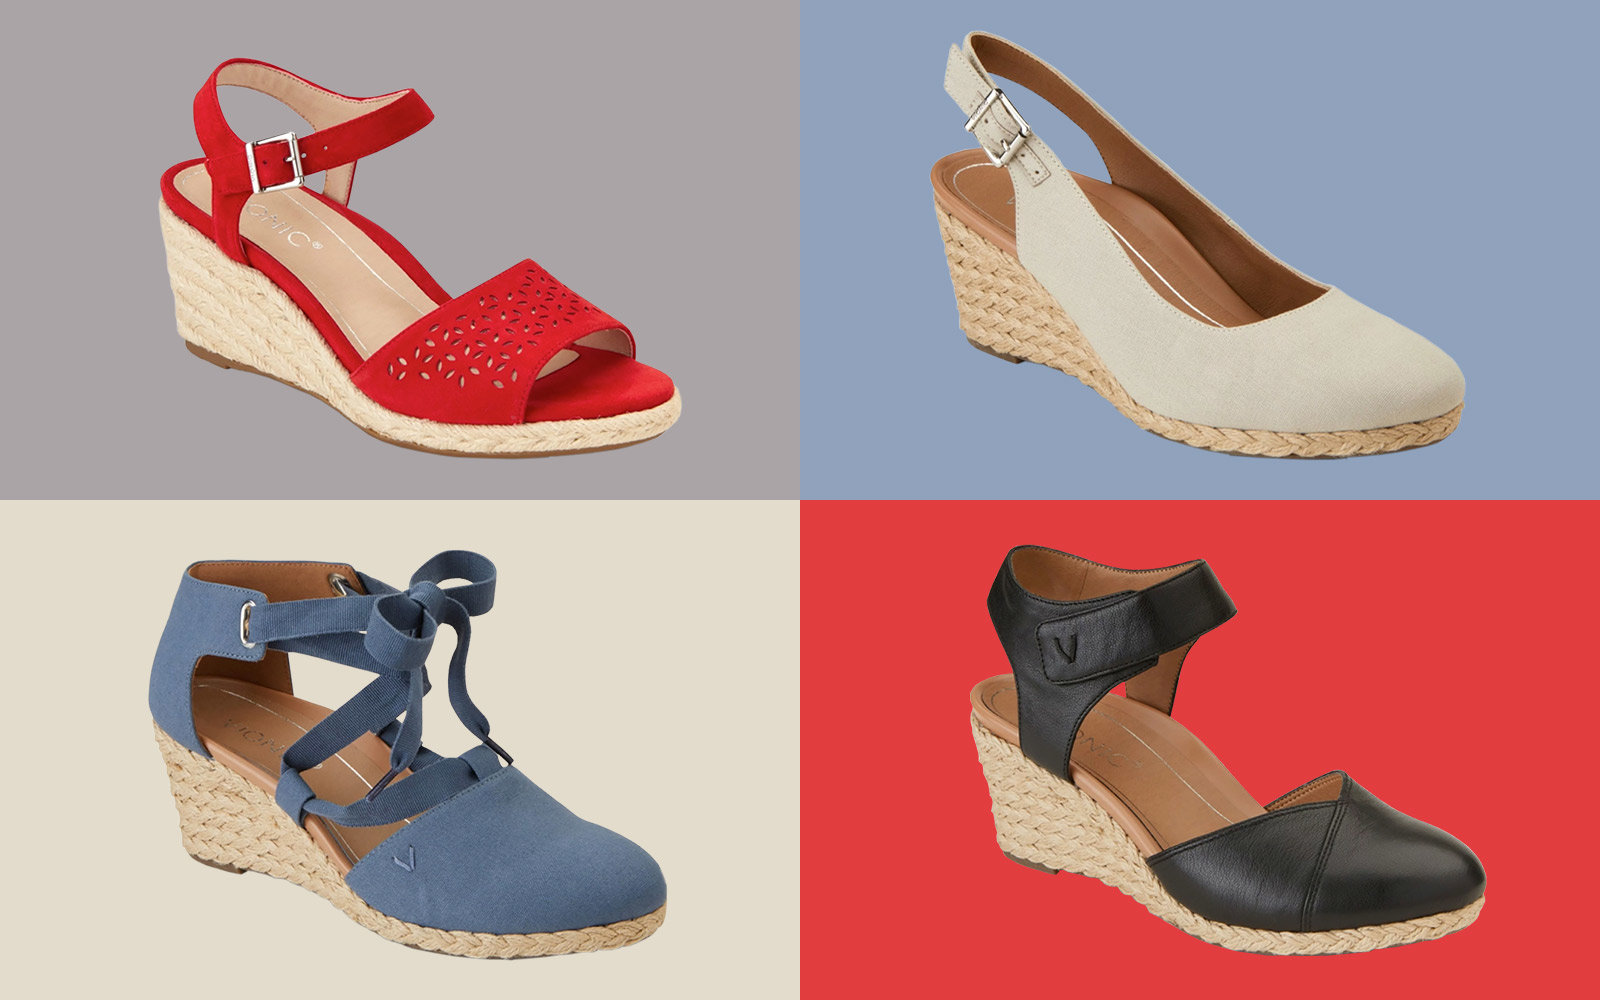 Vionic Espadrilles for Travel